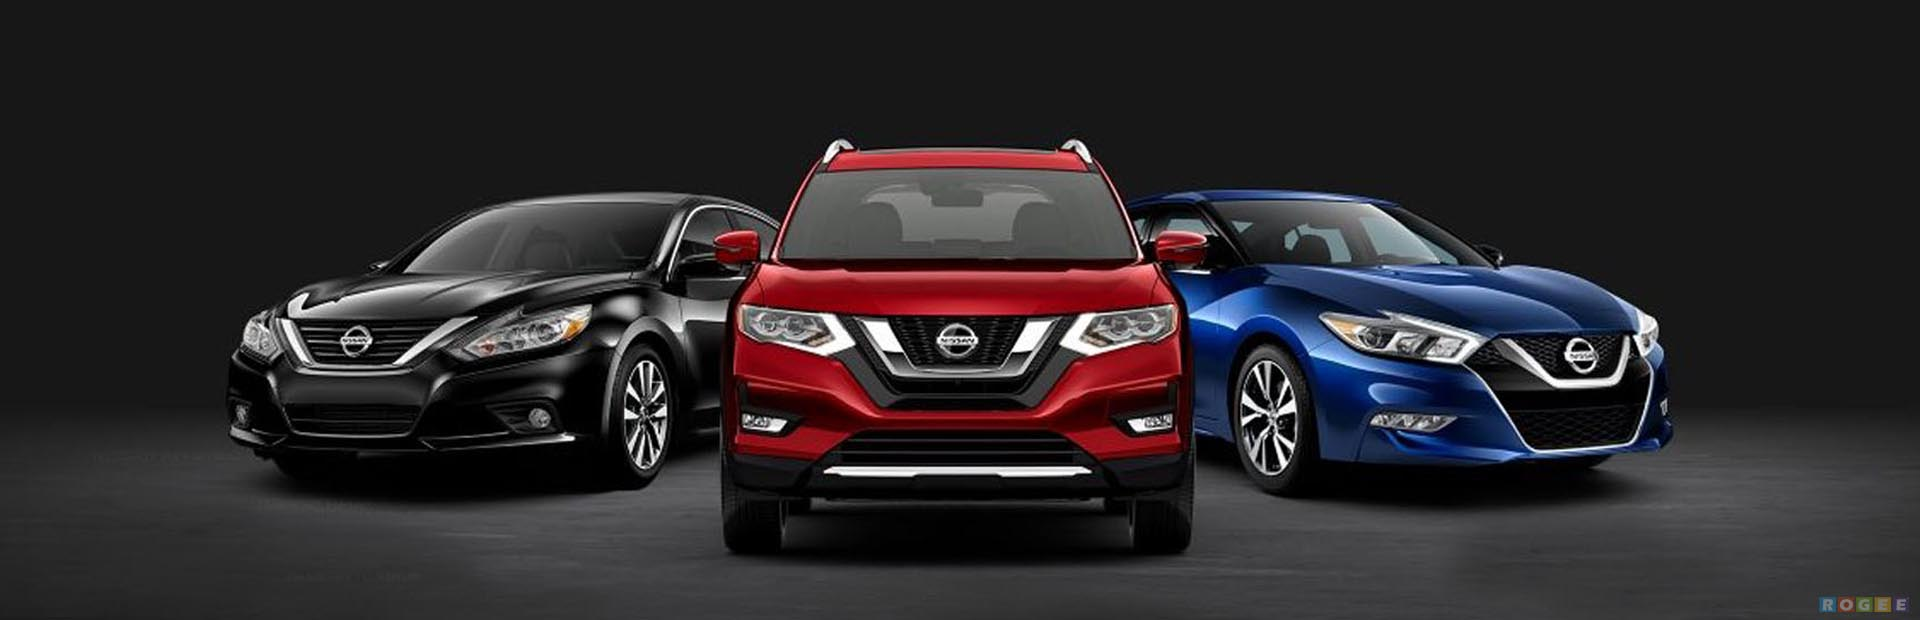 Superb Morlan Nissan | Vehicle Purchase Program | Get Insider Pricing And The VIP  Treatment With Our Vehicle Purchase Program